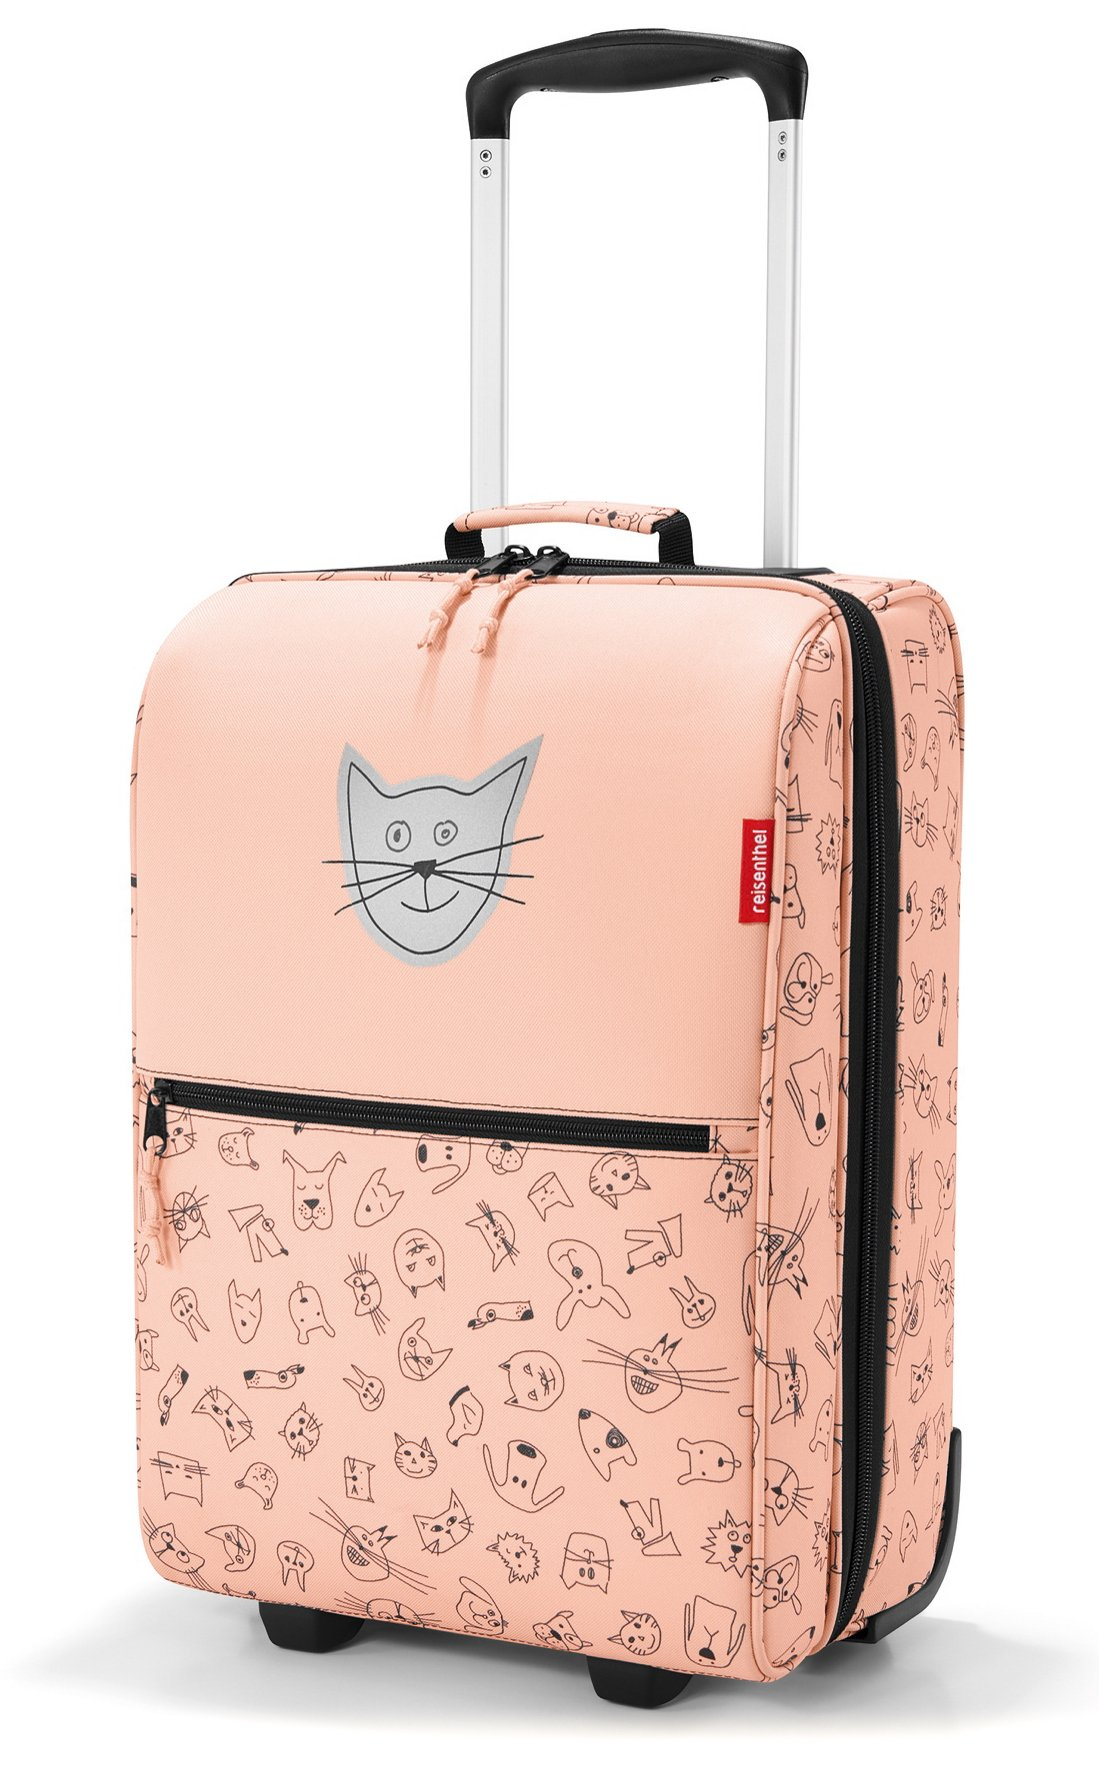 reisenthel Trolley XS Kids Luggage, Lightweight Compact Roller Bag, Cats and Dogs Rose